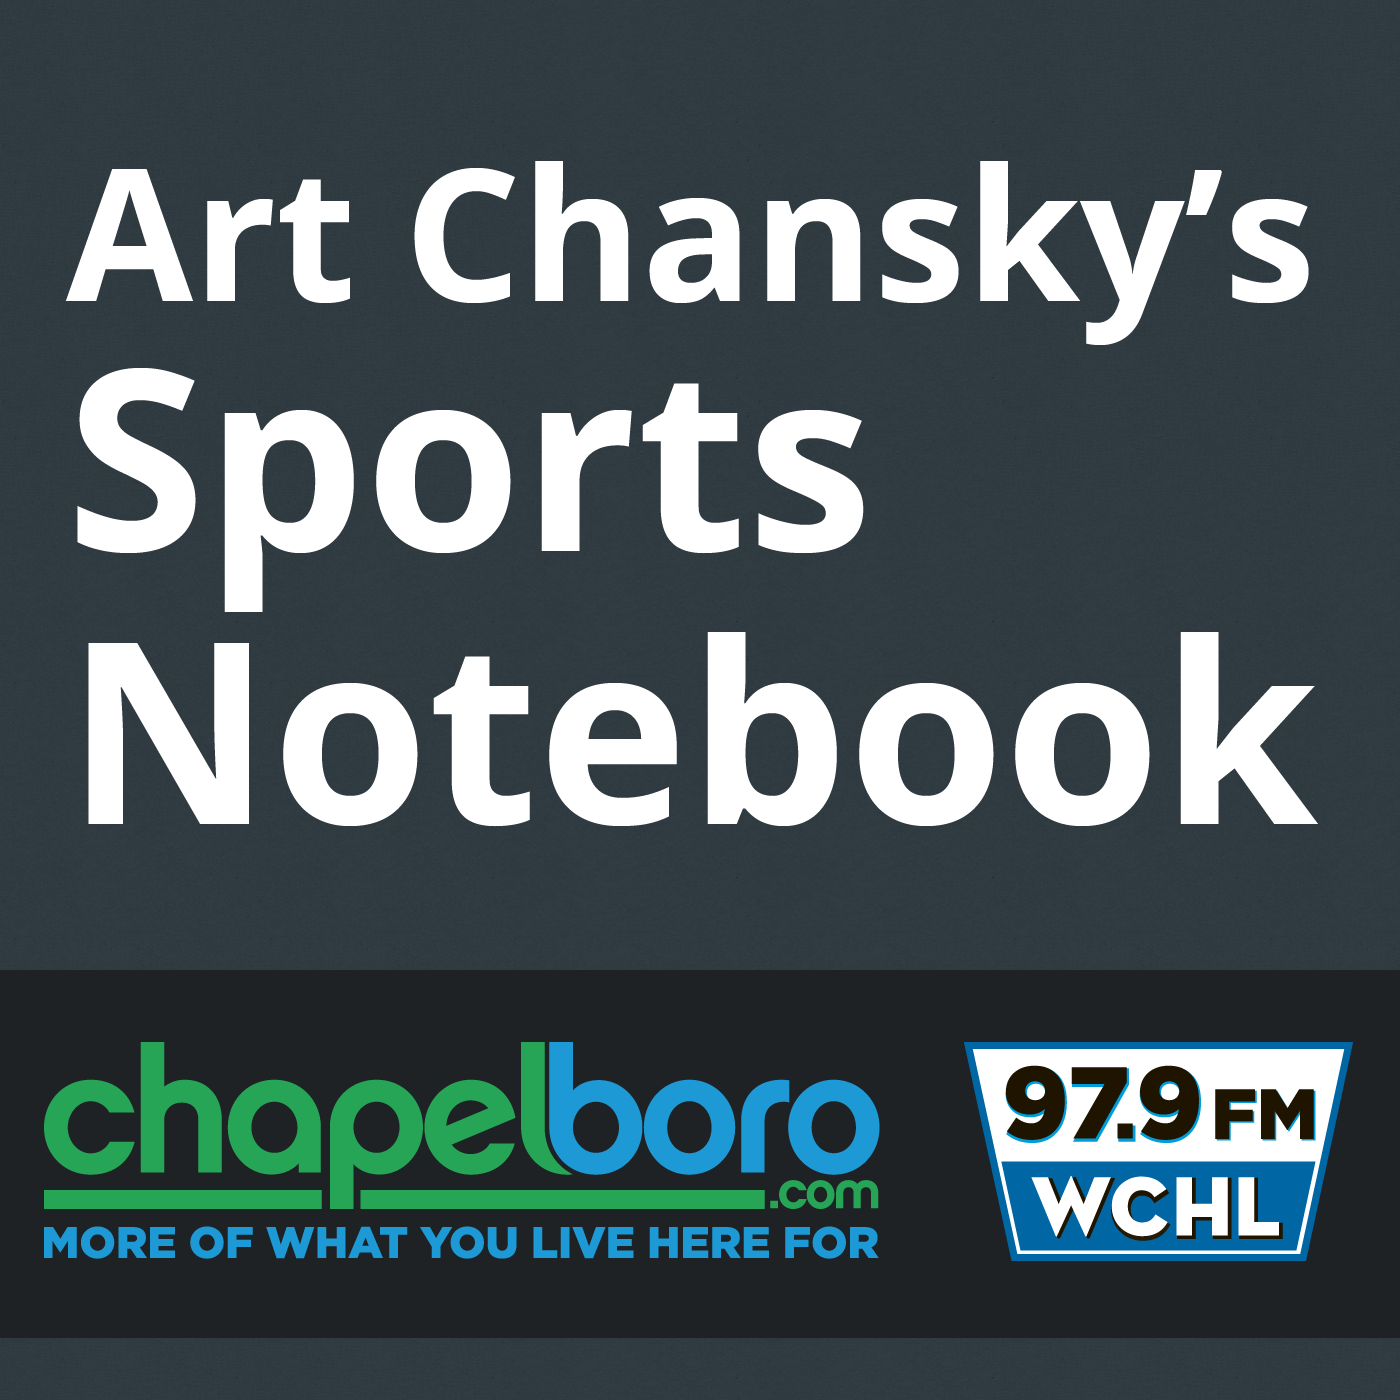 Art Chansky's Sports Notebook